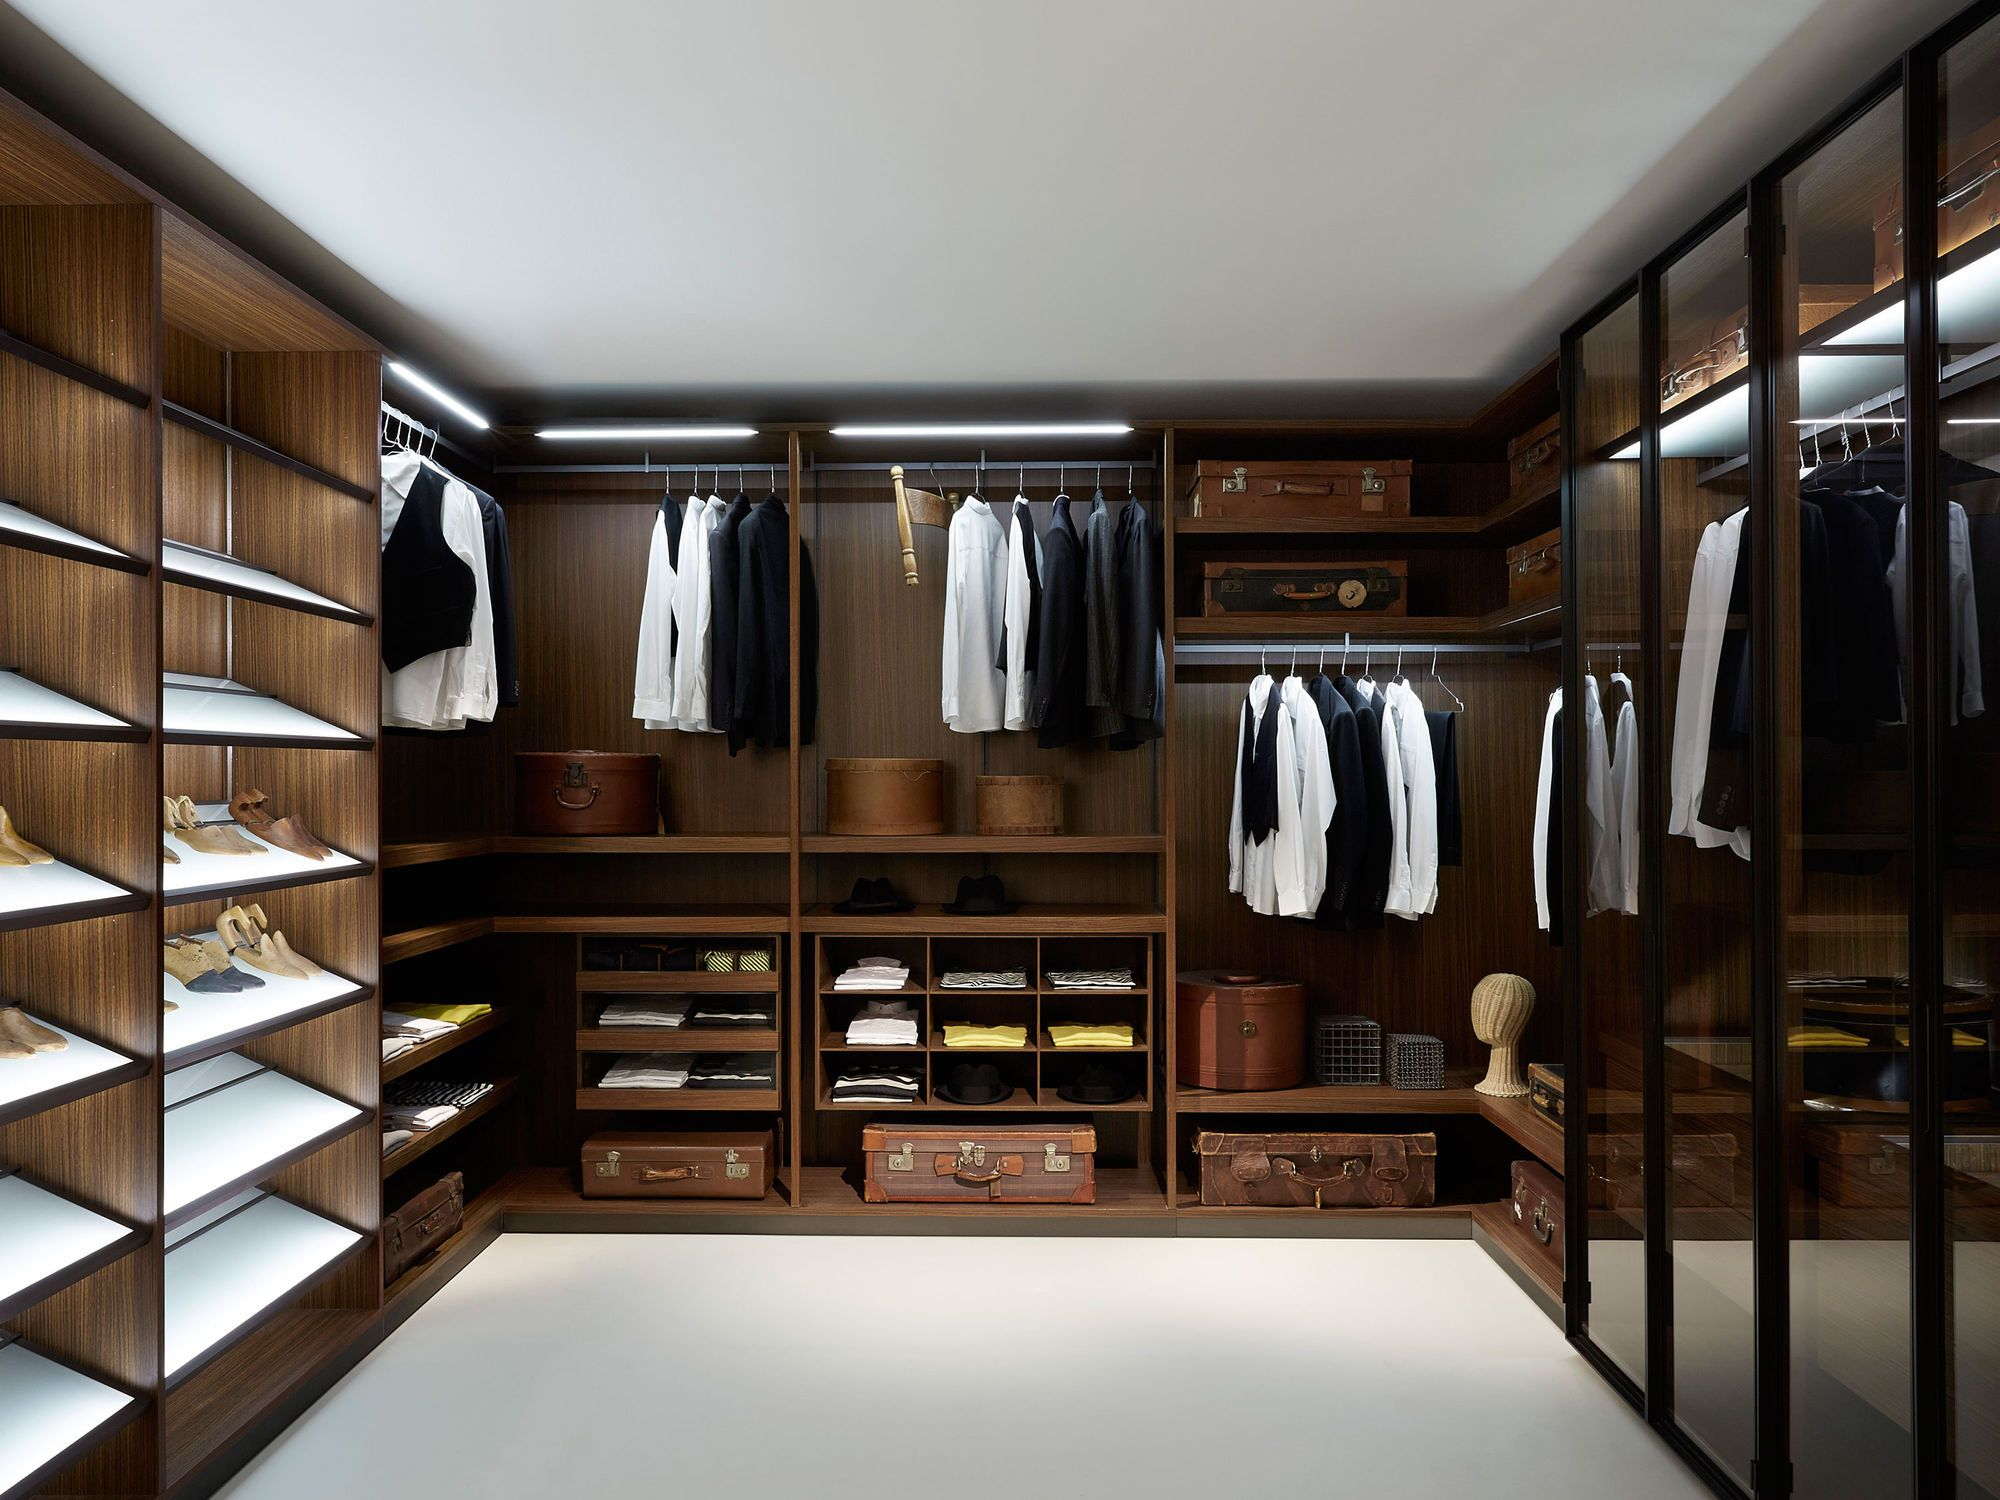 In This Post We Have 21 Best Traditional Storage U0026 Closets Design Ideas For  Your Beautiful Home, Get Inspired And Donu0027t Forget To Share This Collection  In ...